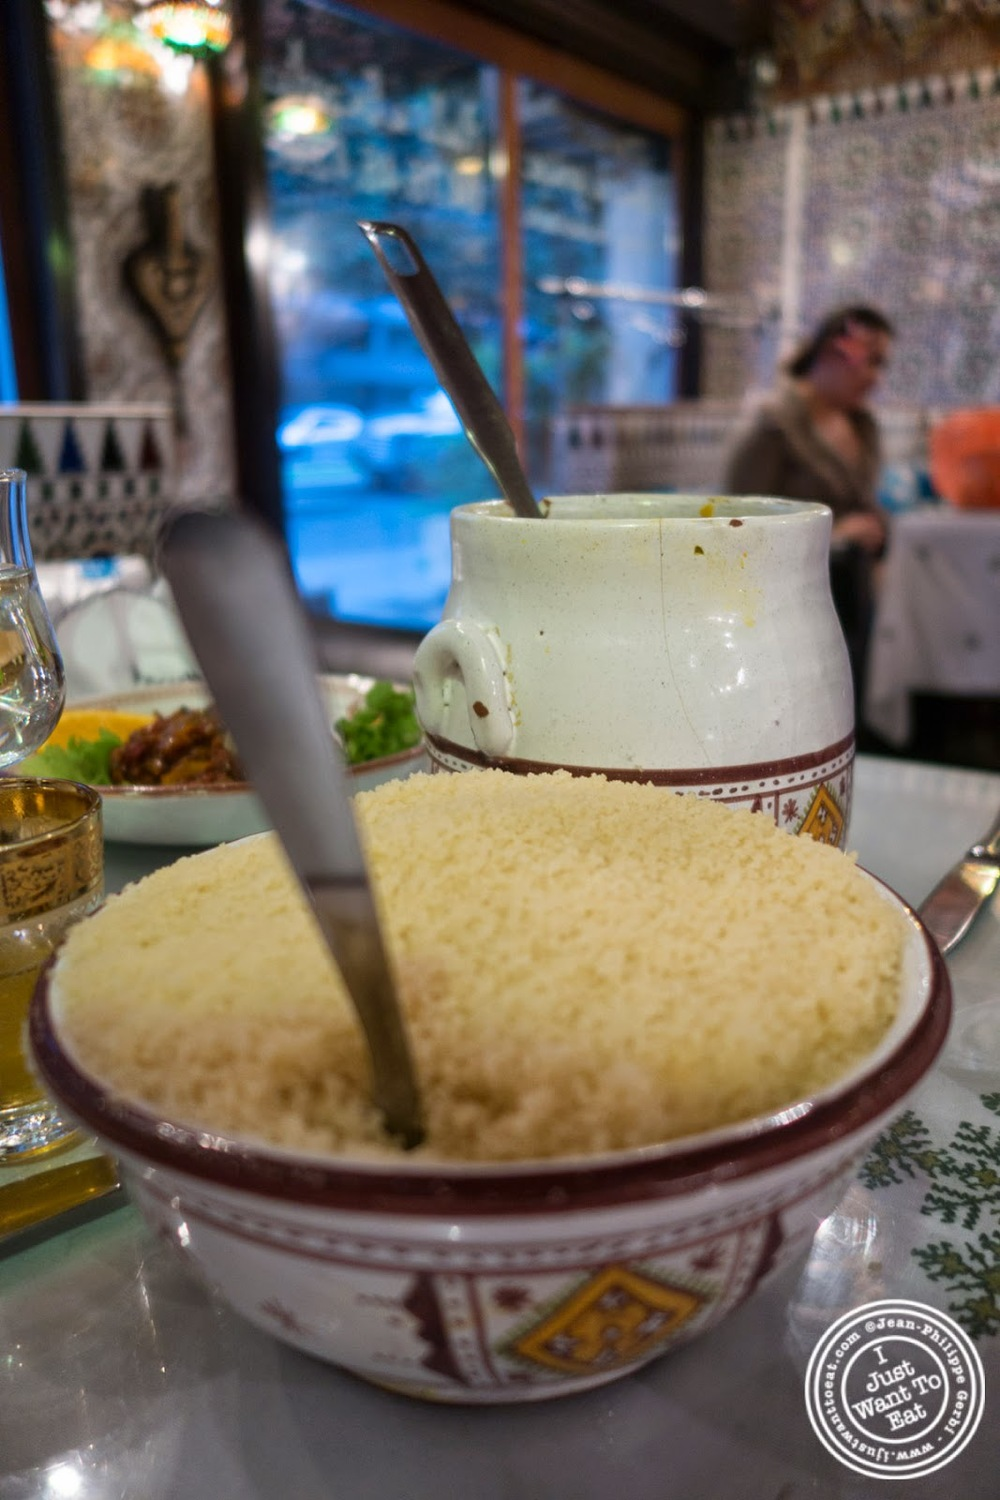 image of vegetarian couscous at Le Marrakech, Moroccan restaurant in Grenoble, France